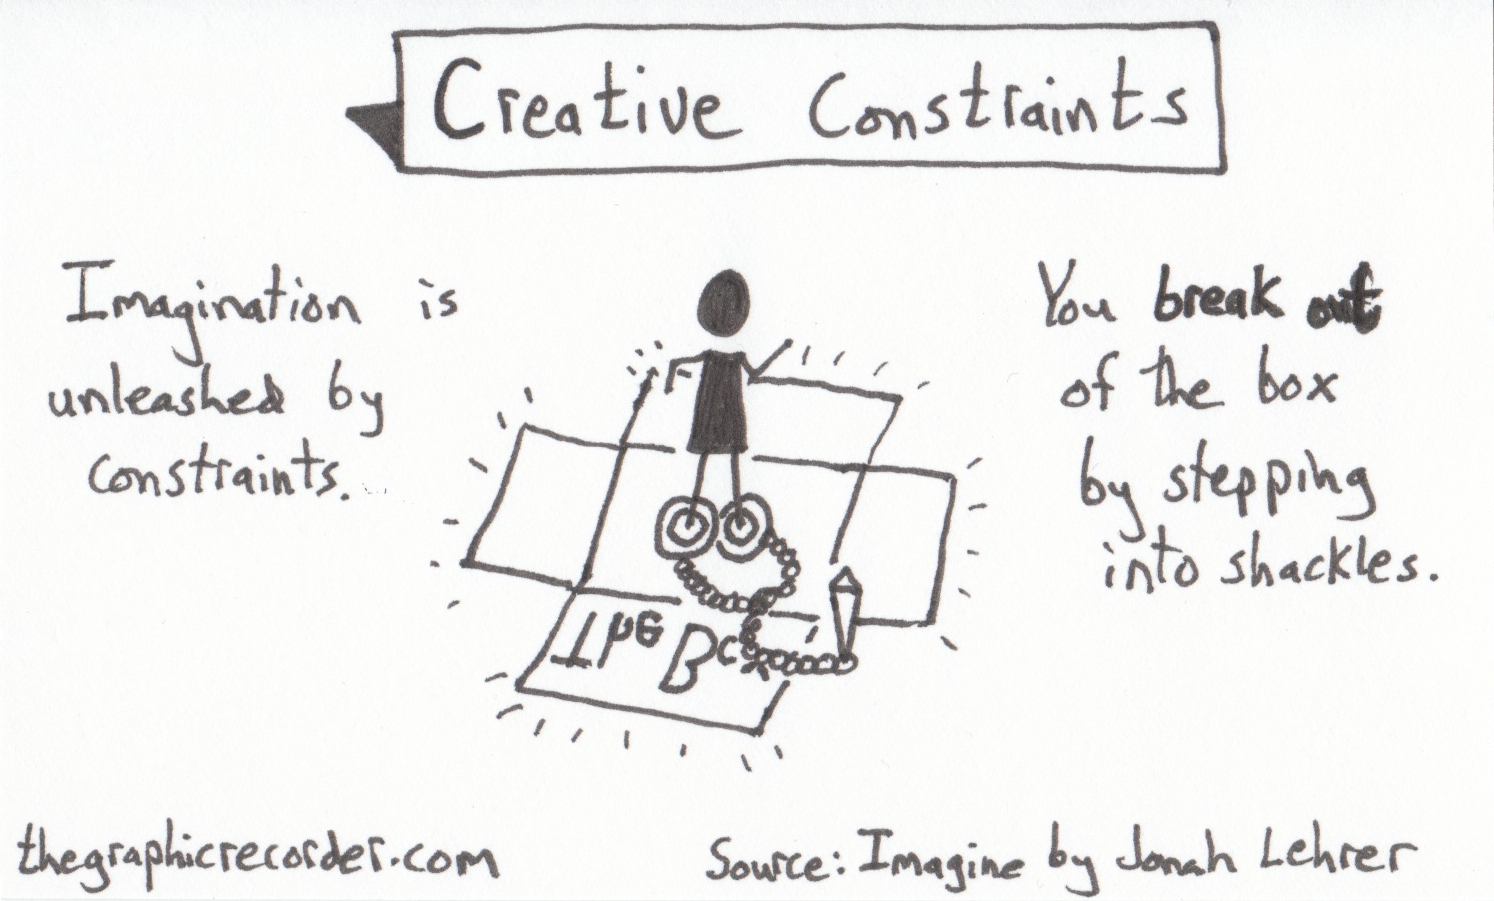 The Graphic Recorder - Note Card Sketch Notes Post - One Card One Concept - Creative Constraints - Jonah Lehrer - Imagine